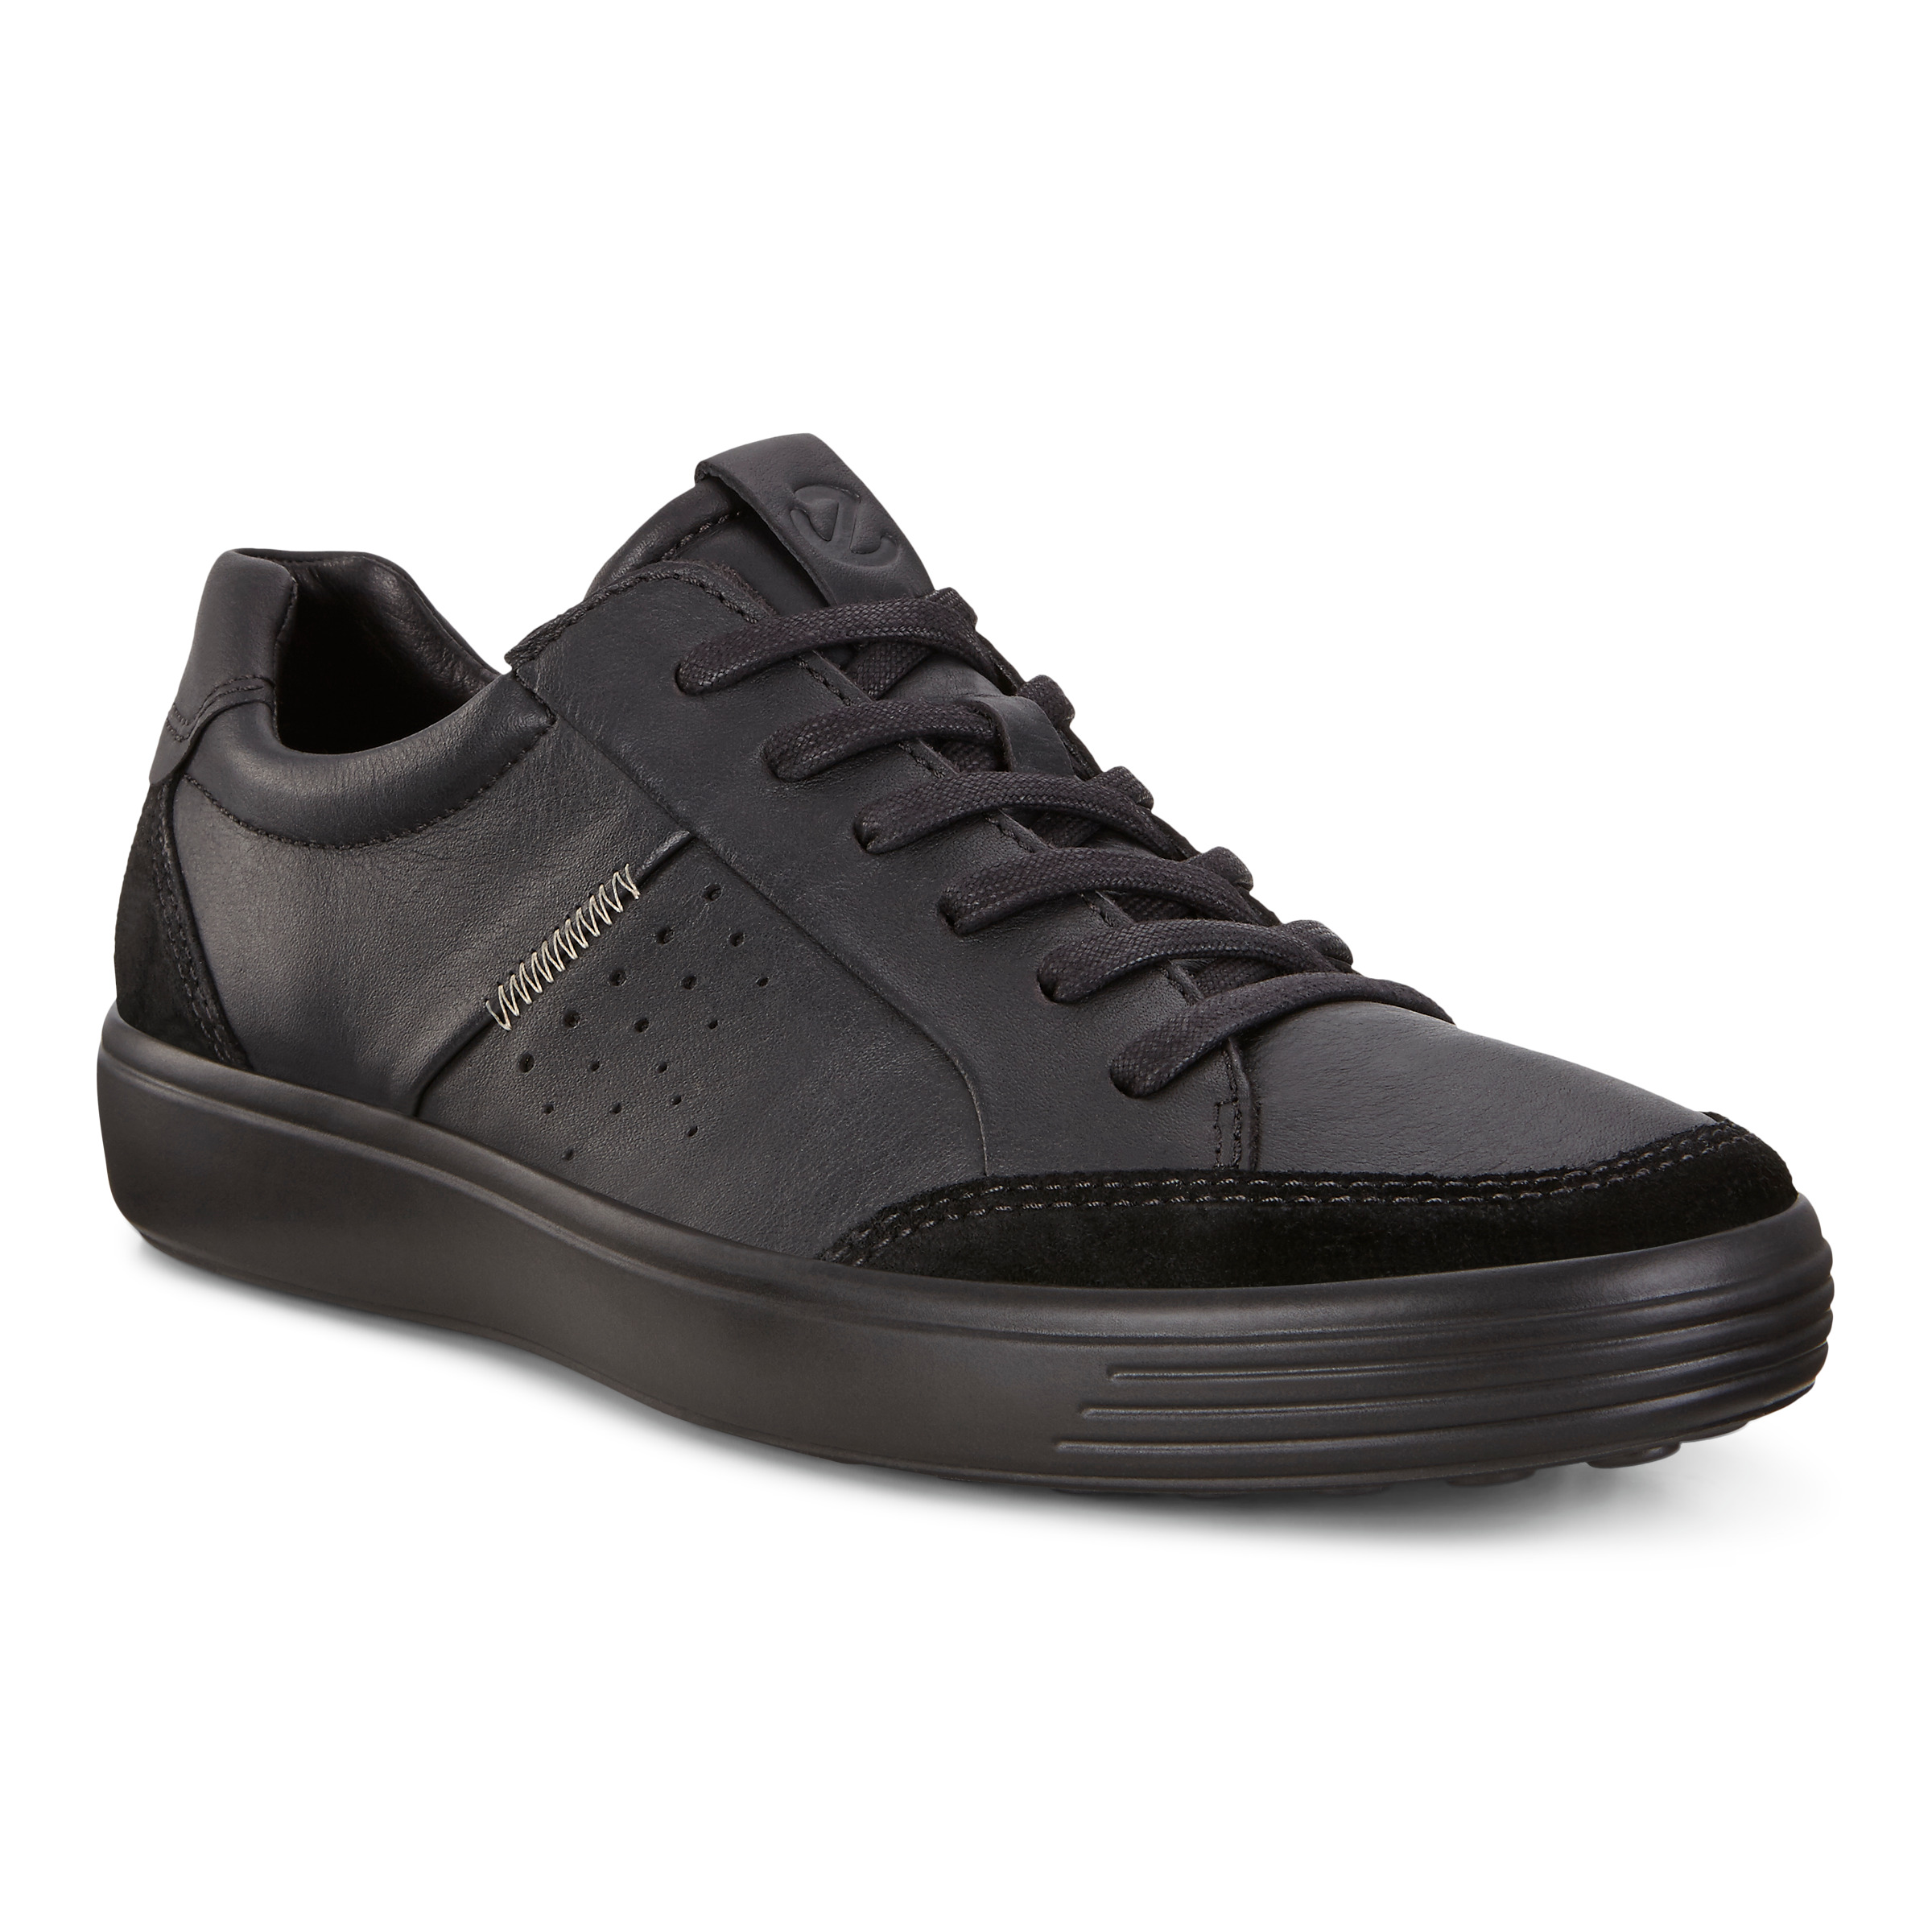 Ecco Colors All Sizes 7 Nubuck And M Details About Soft Leather Walking Shoes Sneaker fYb7g6y